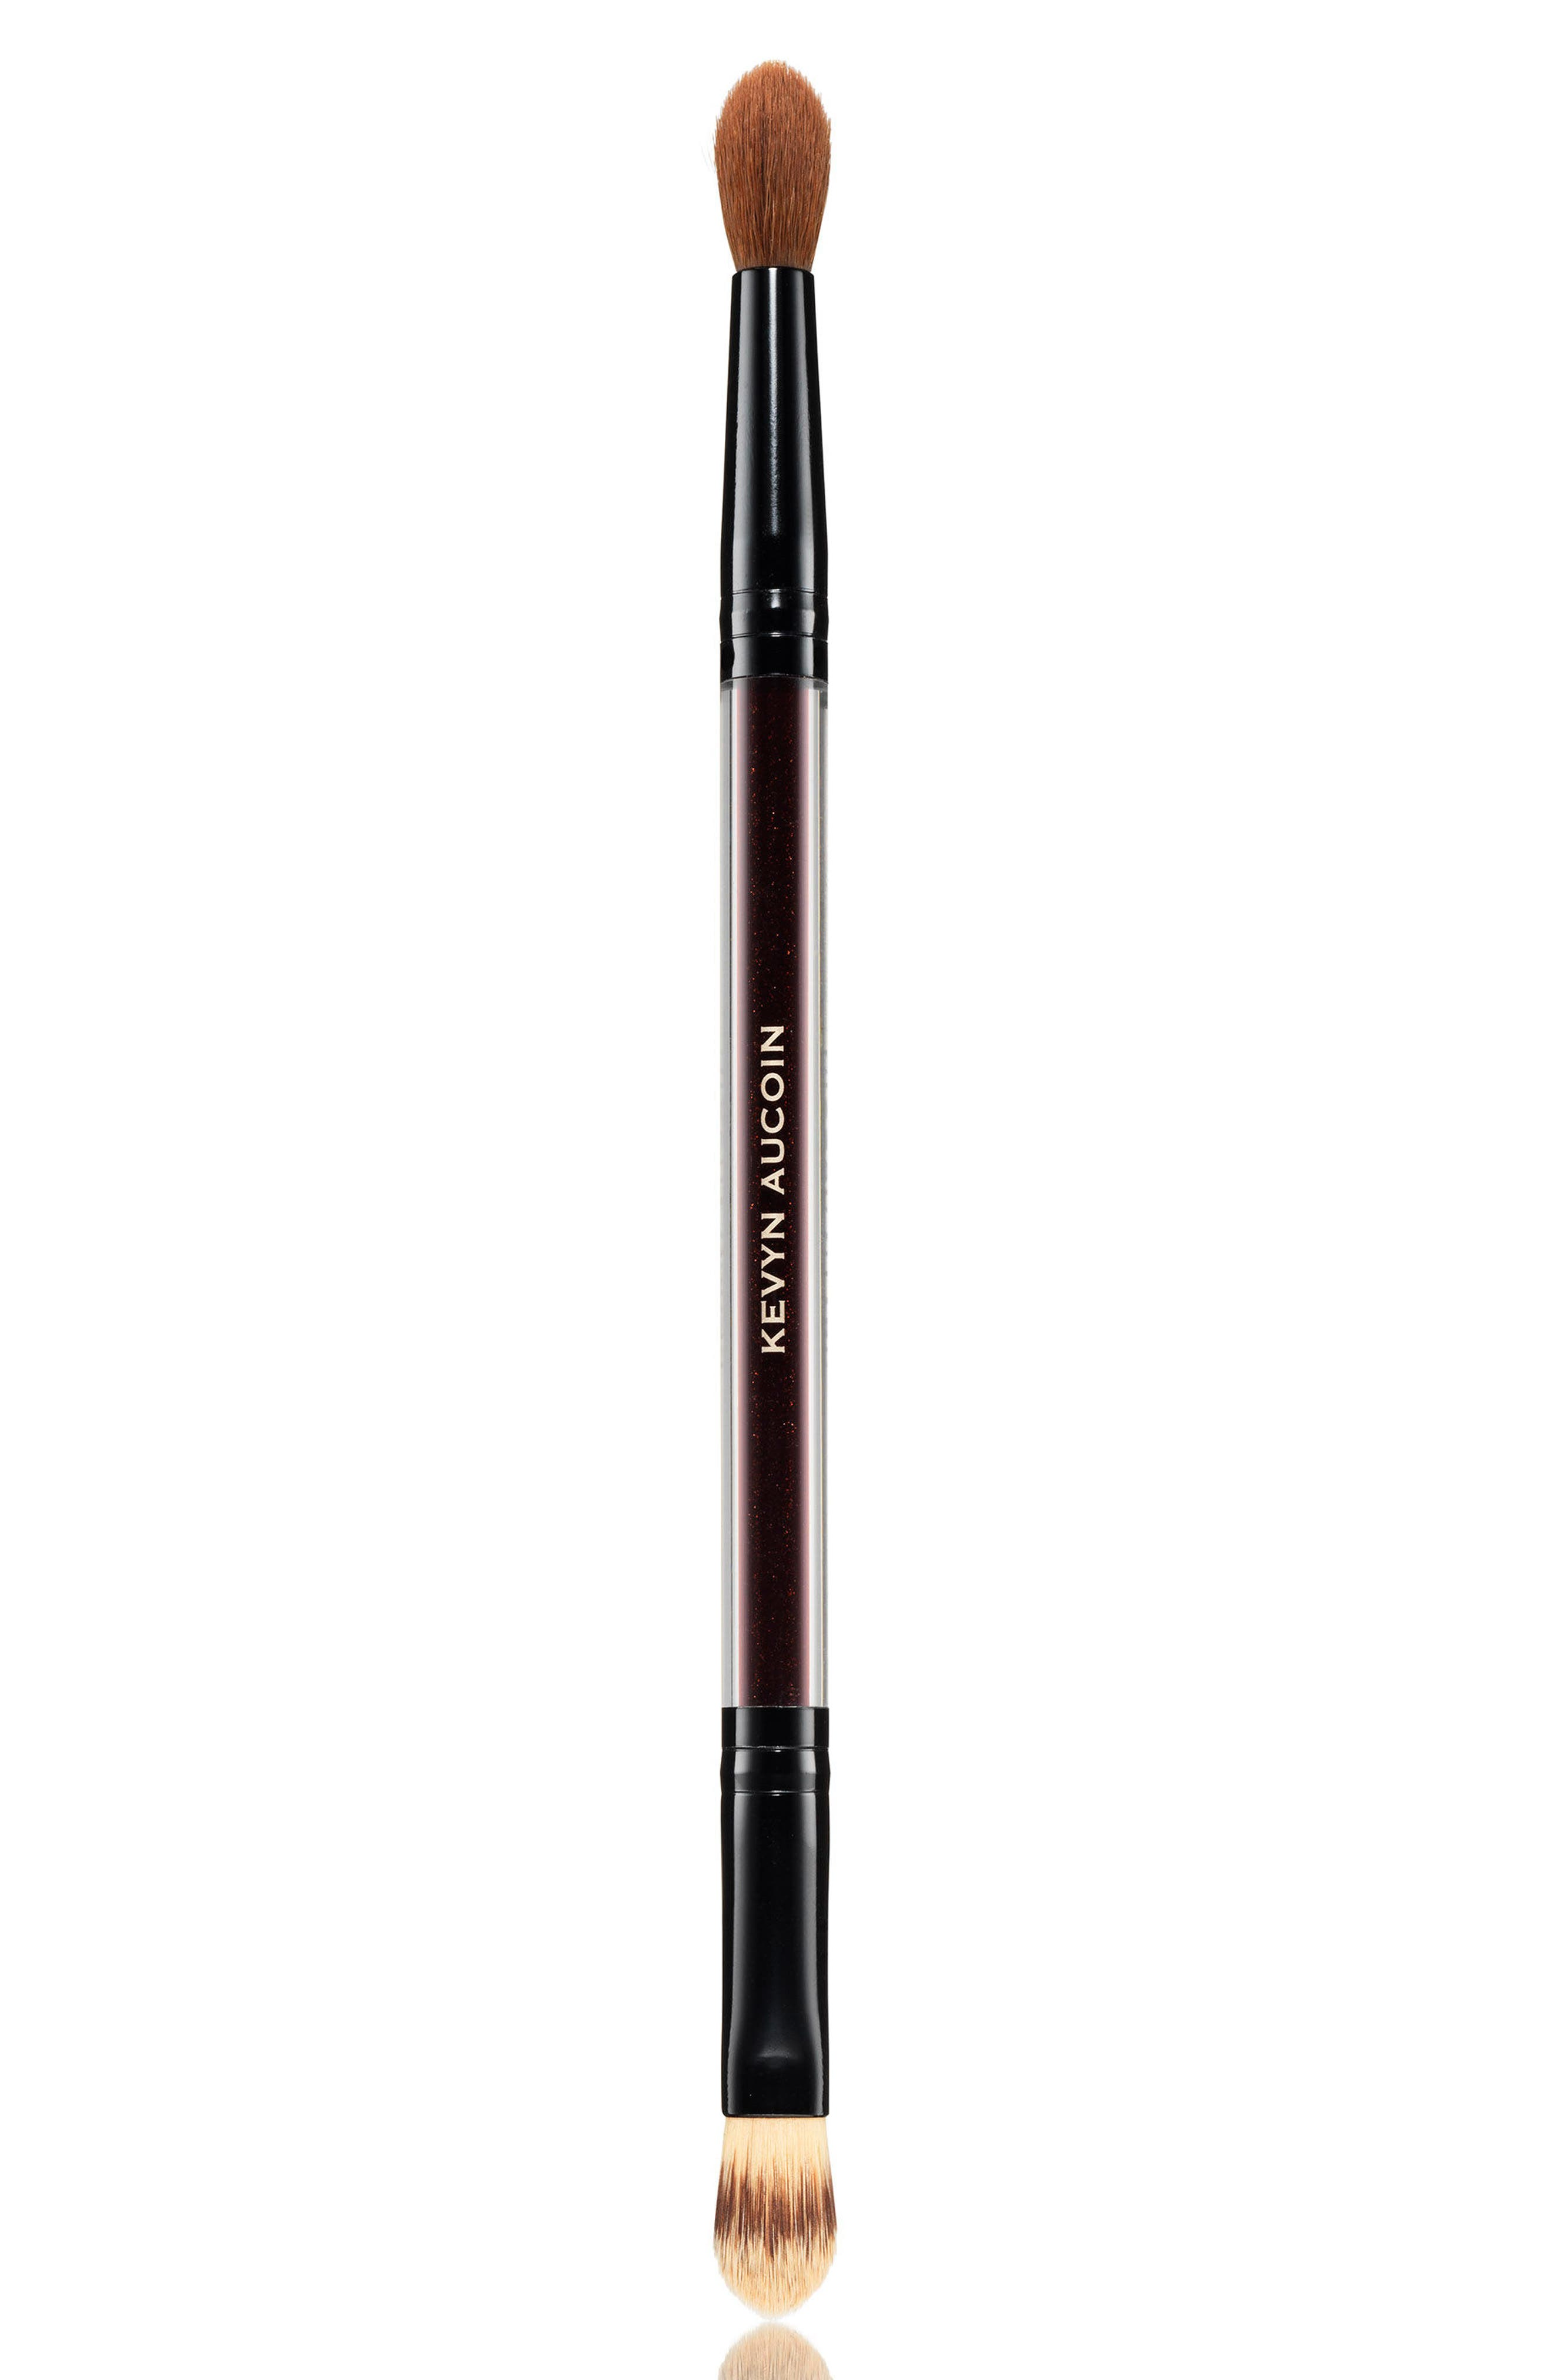 SPACE.NK.apothecary Kevyn Aucoin Beauty The Duet Concealer Brush,                         Main,                         color, No Color